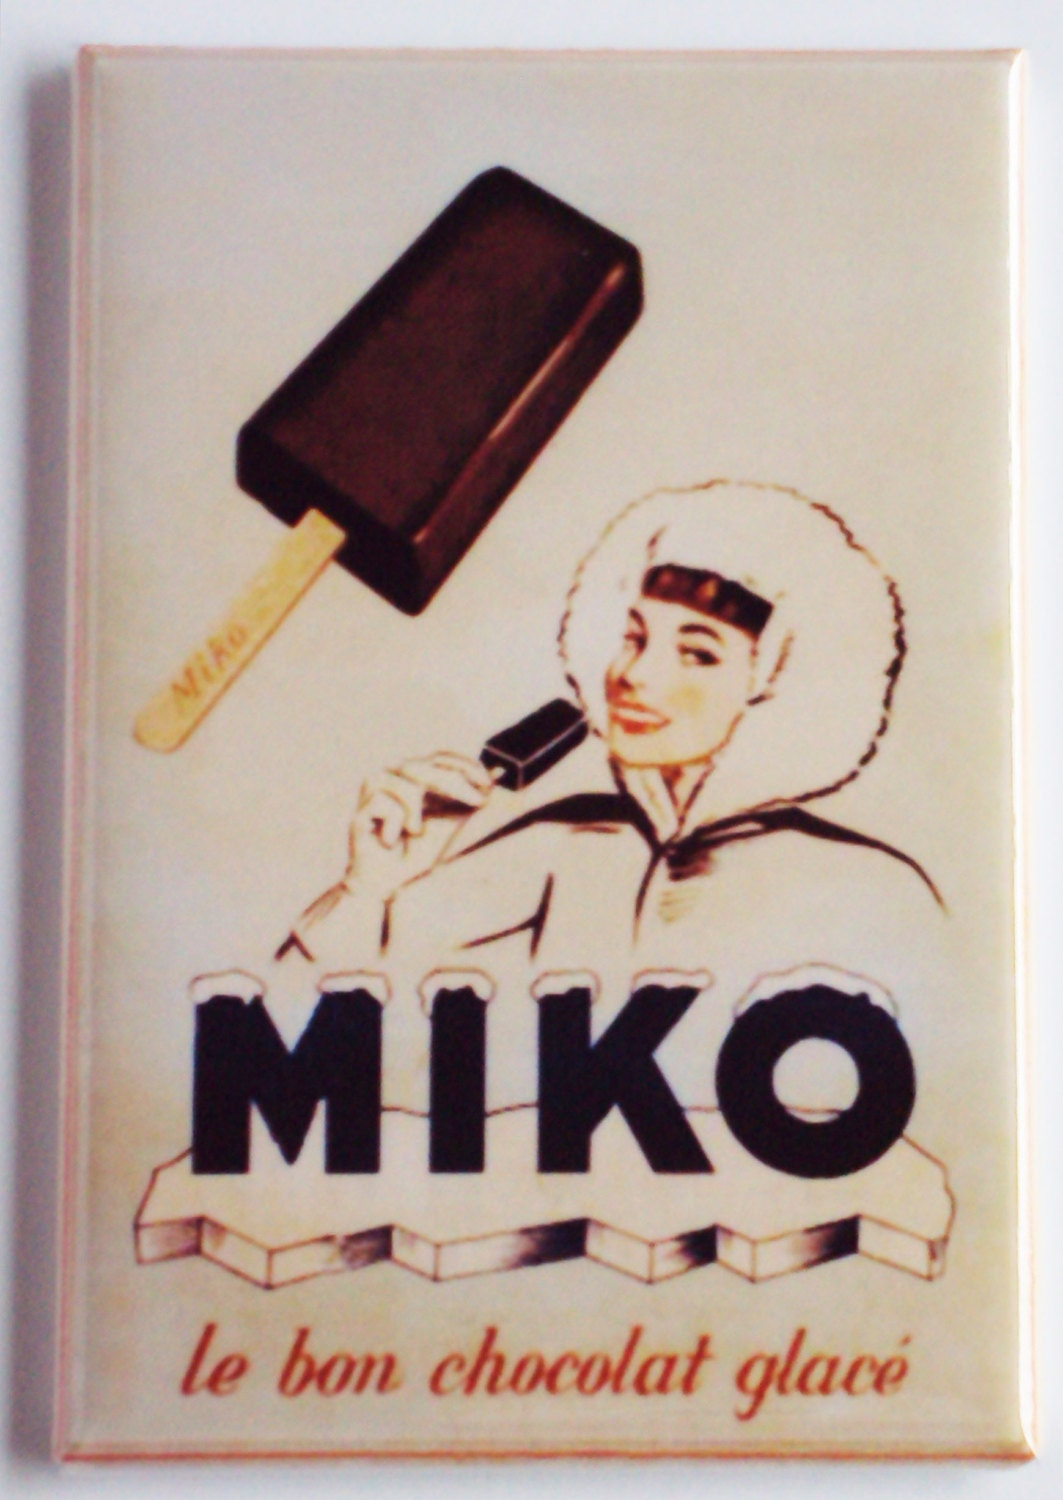 Miko Ice Cream Sign Fridge Magnet Etsy